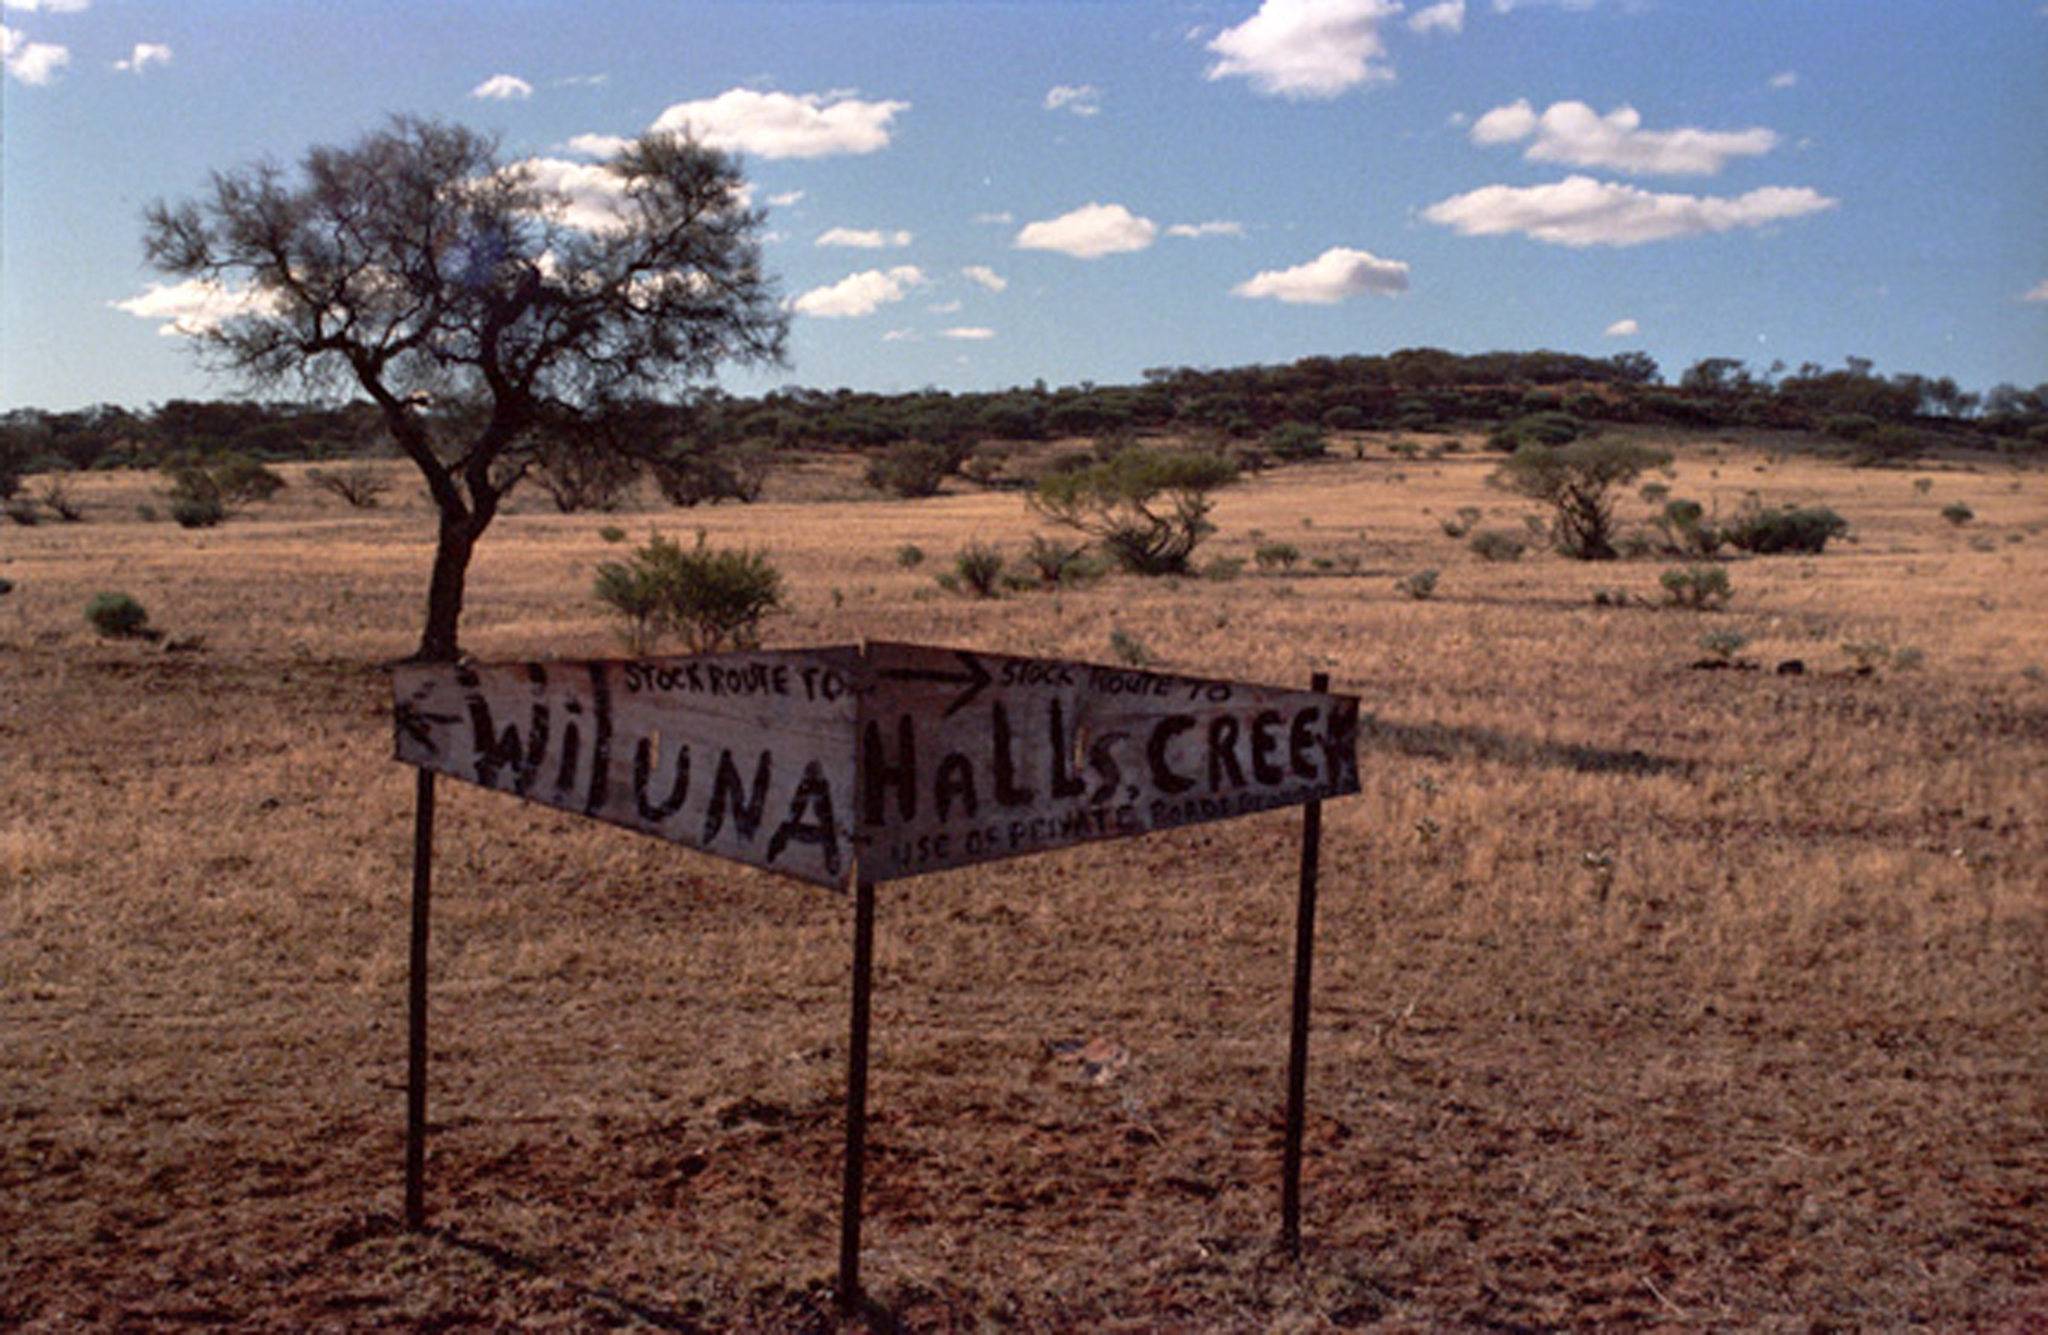 Wiluna to Halls Creek